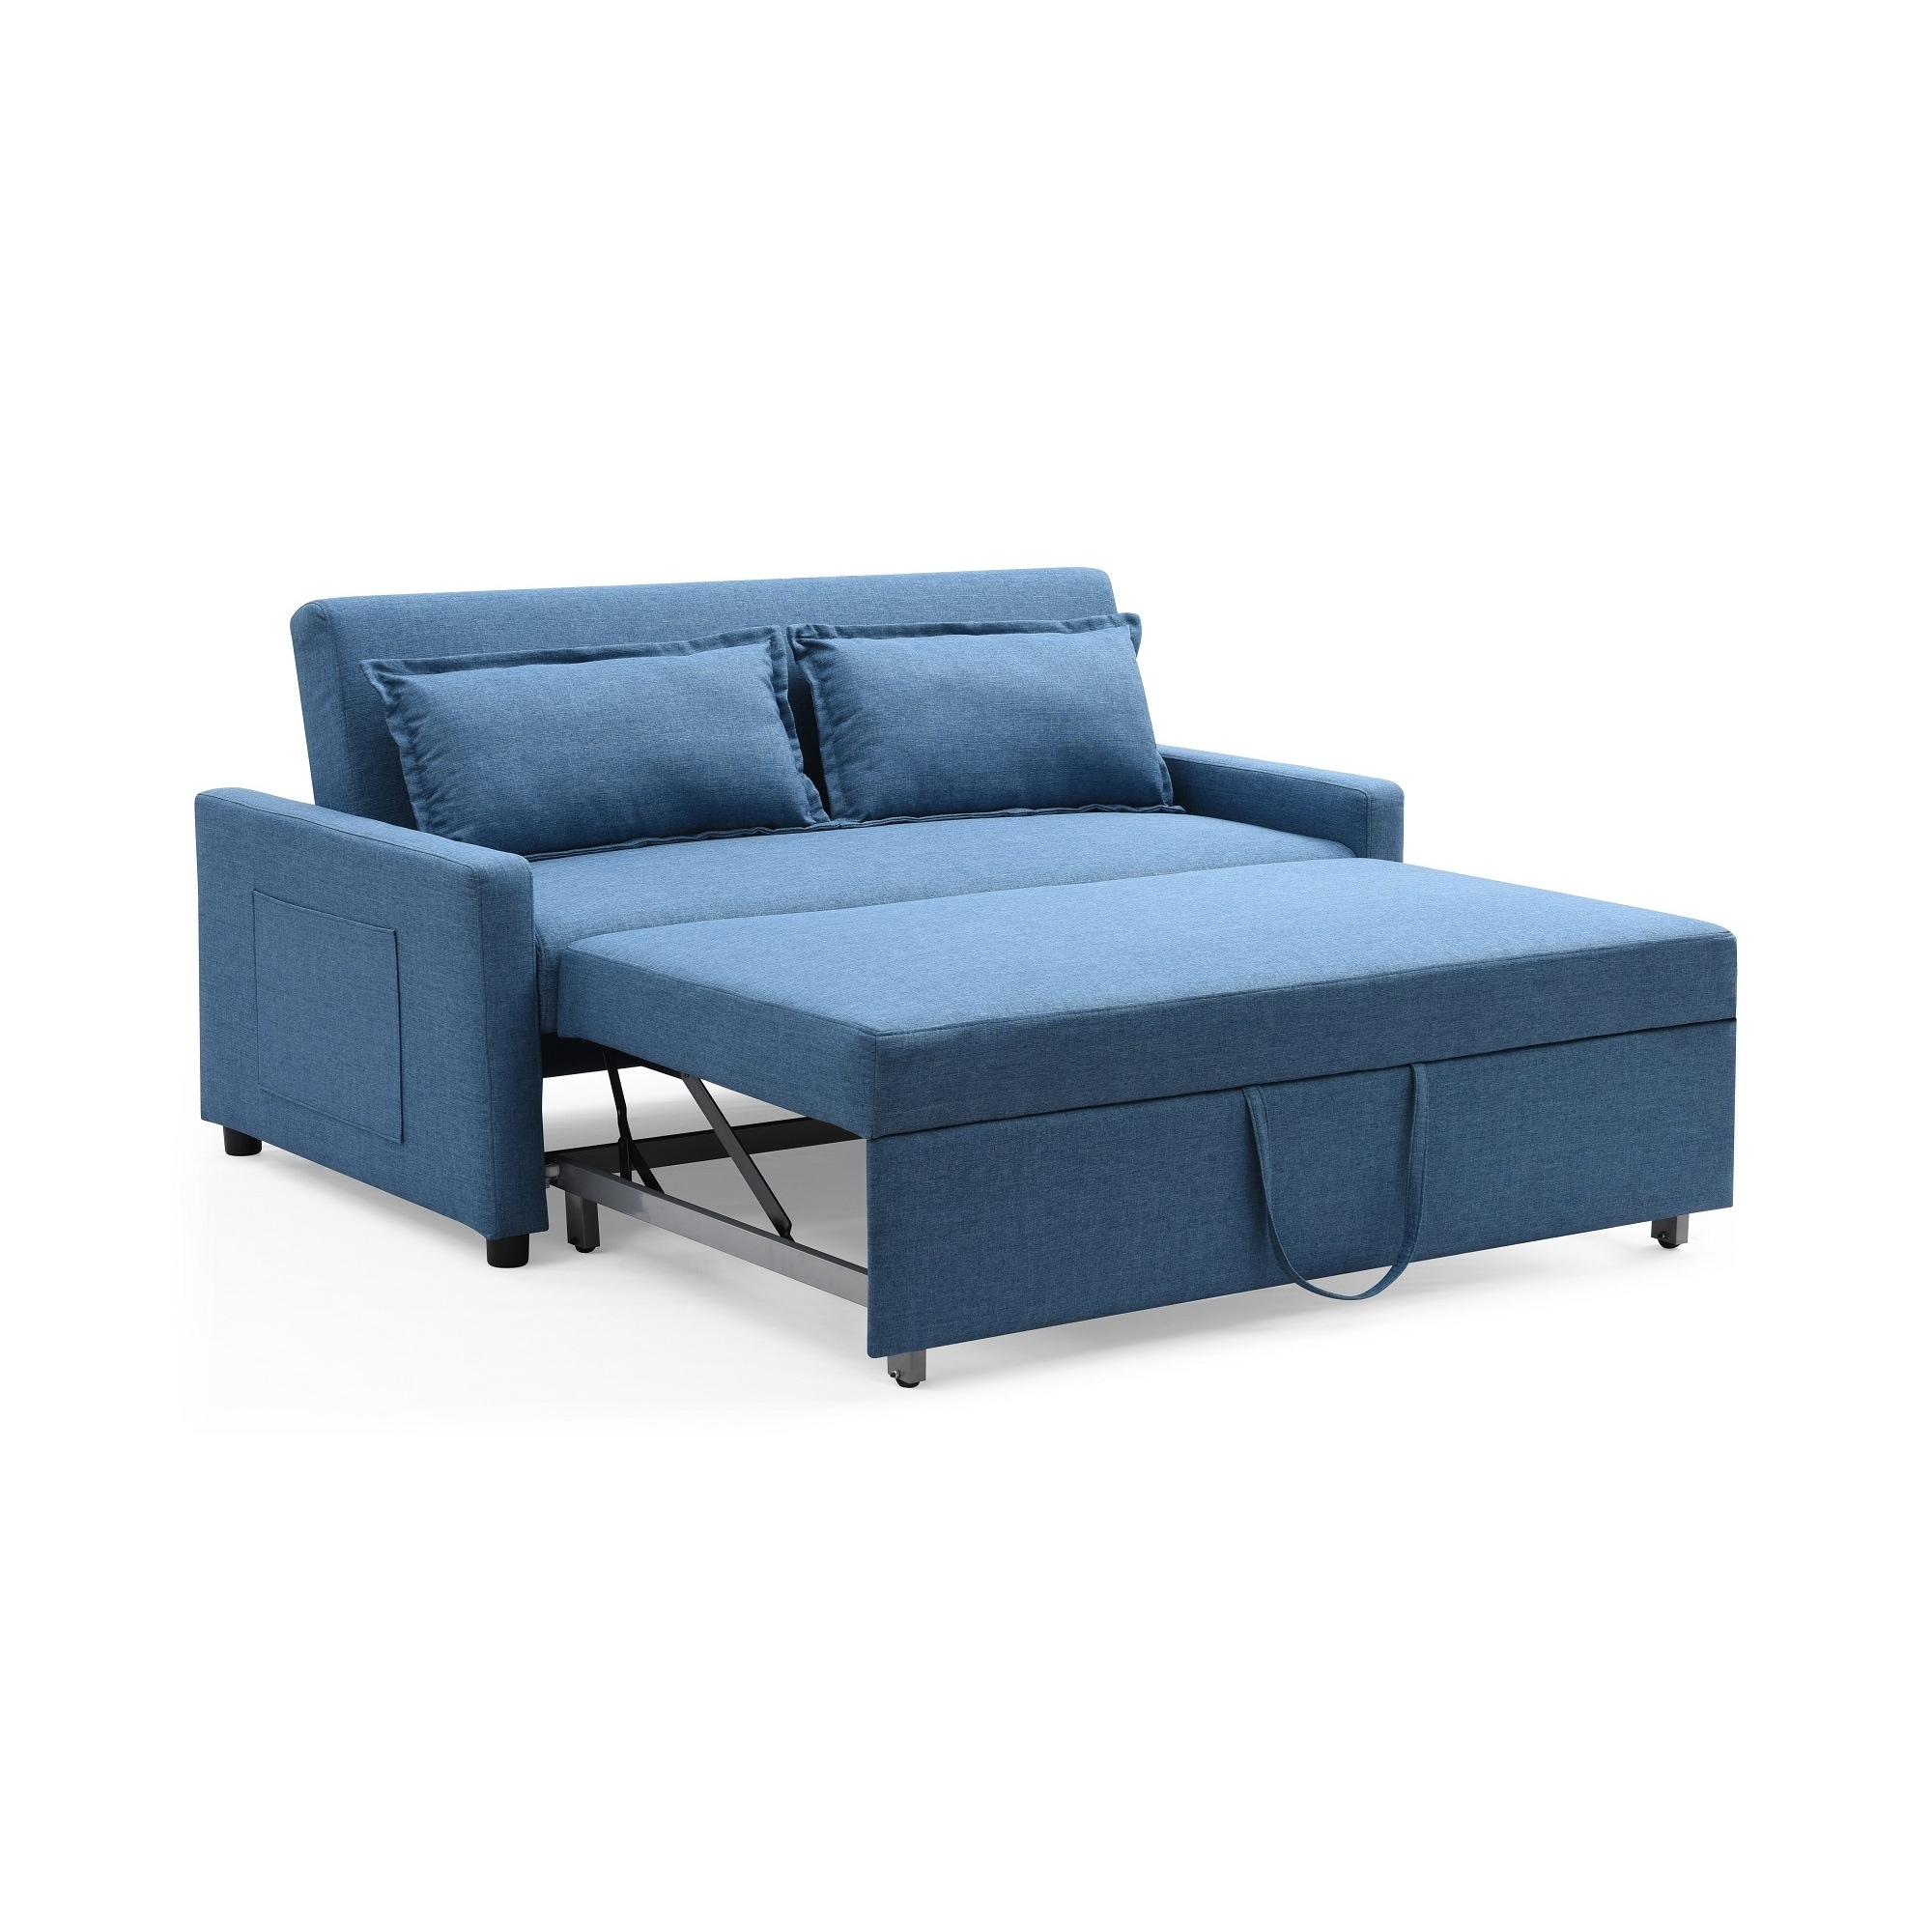 Delightful The Curated Nomad Stadtmuller Convertible Sofa With Pullout Bed   Free  Shipping Today   Overstock   19549956